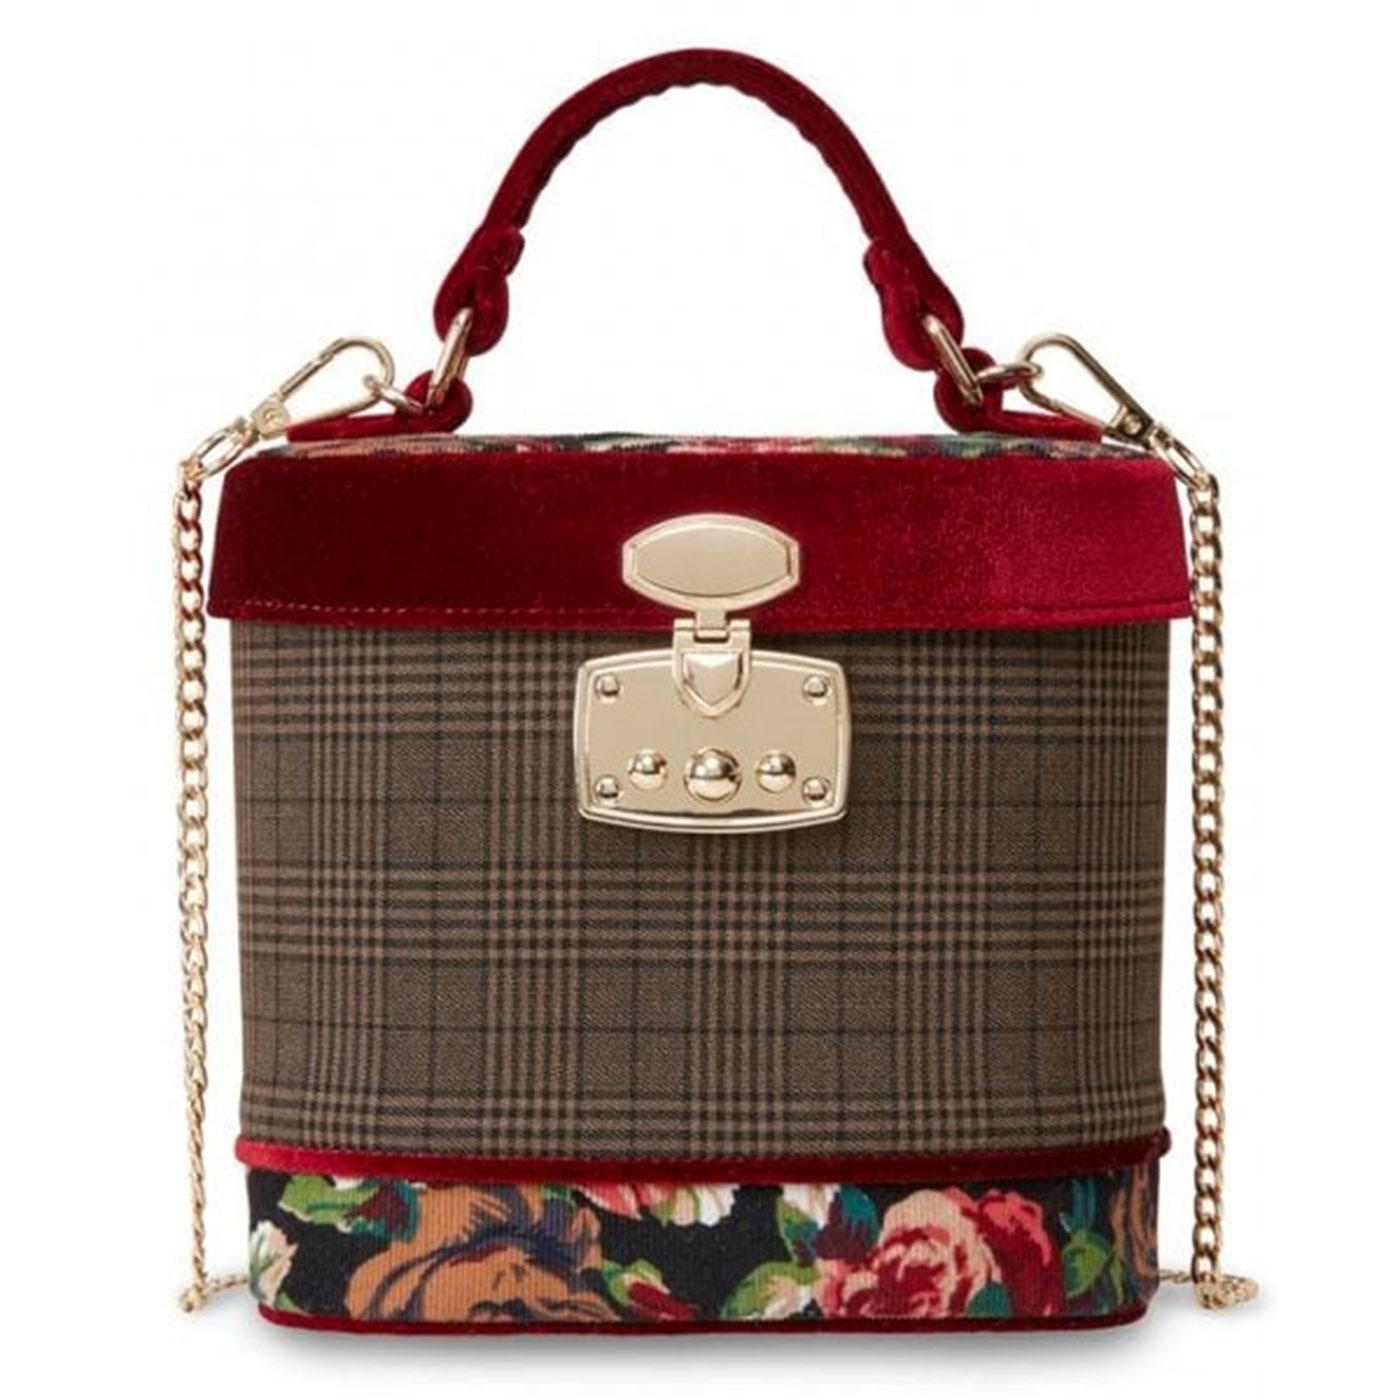 Ruby JOE BROWNS COUTURE Vintage Tweed Box Bag